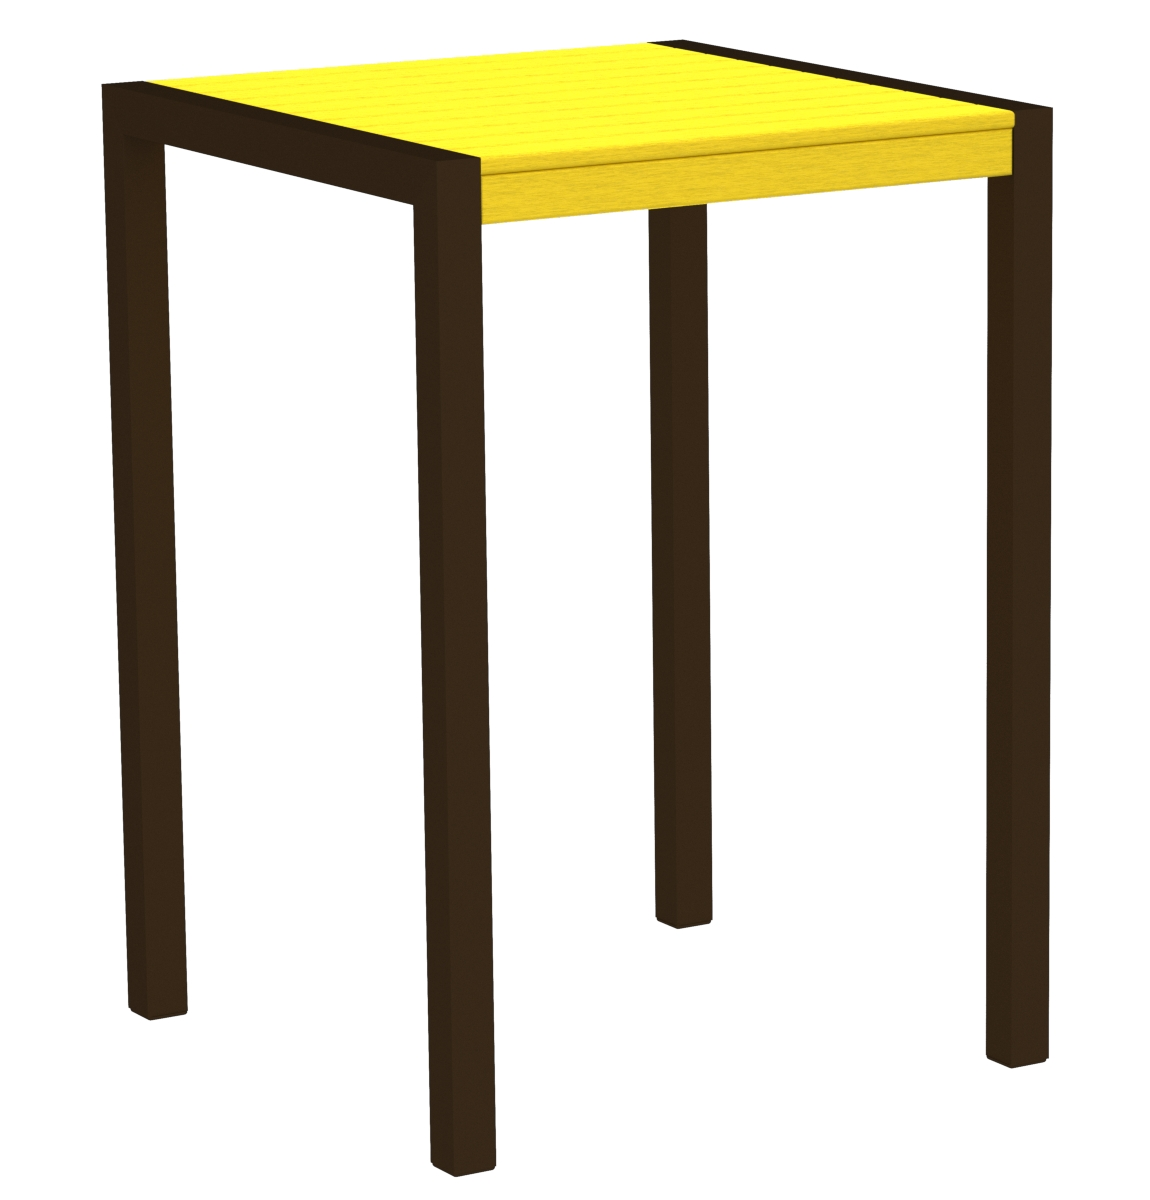 POLYWOOD 8002-16LE MOD 30' Bar Table in Textured Bronze / Lemon